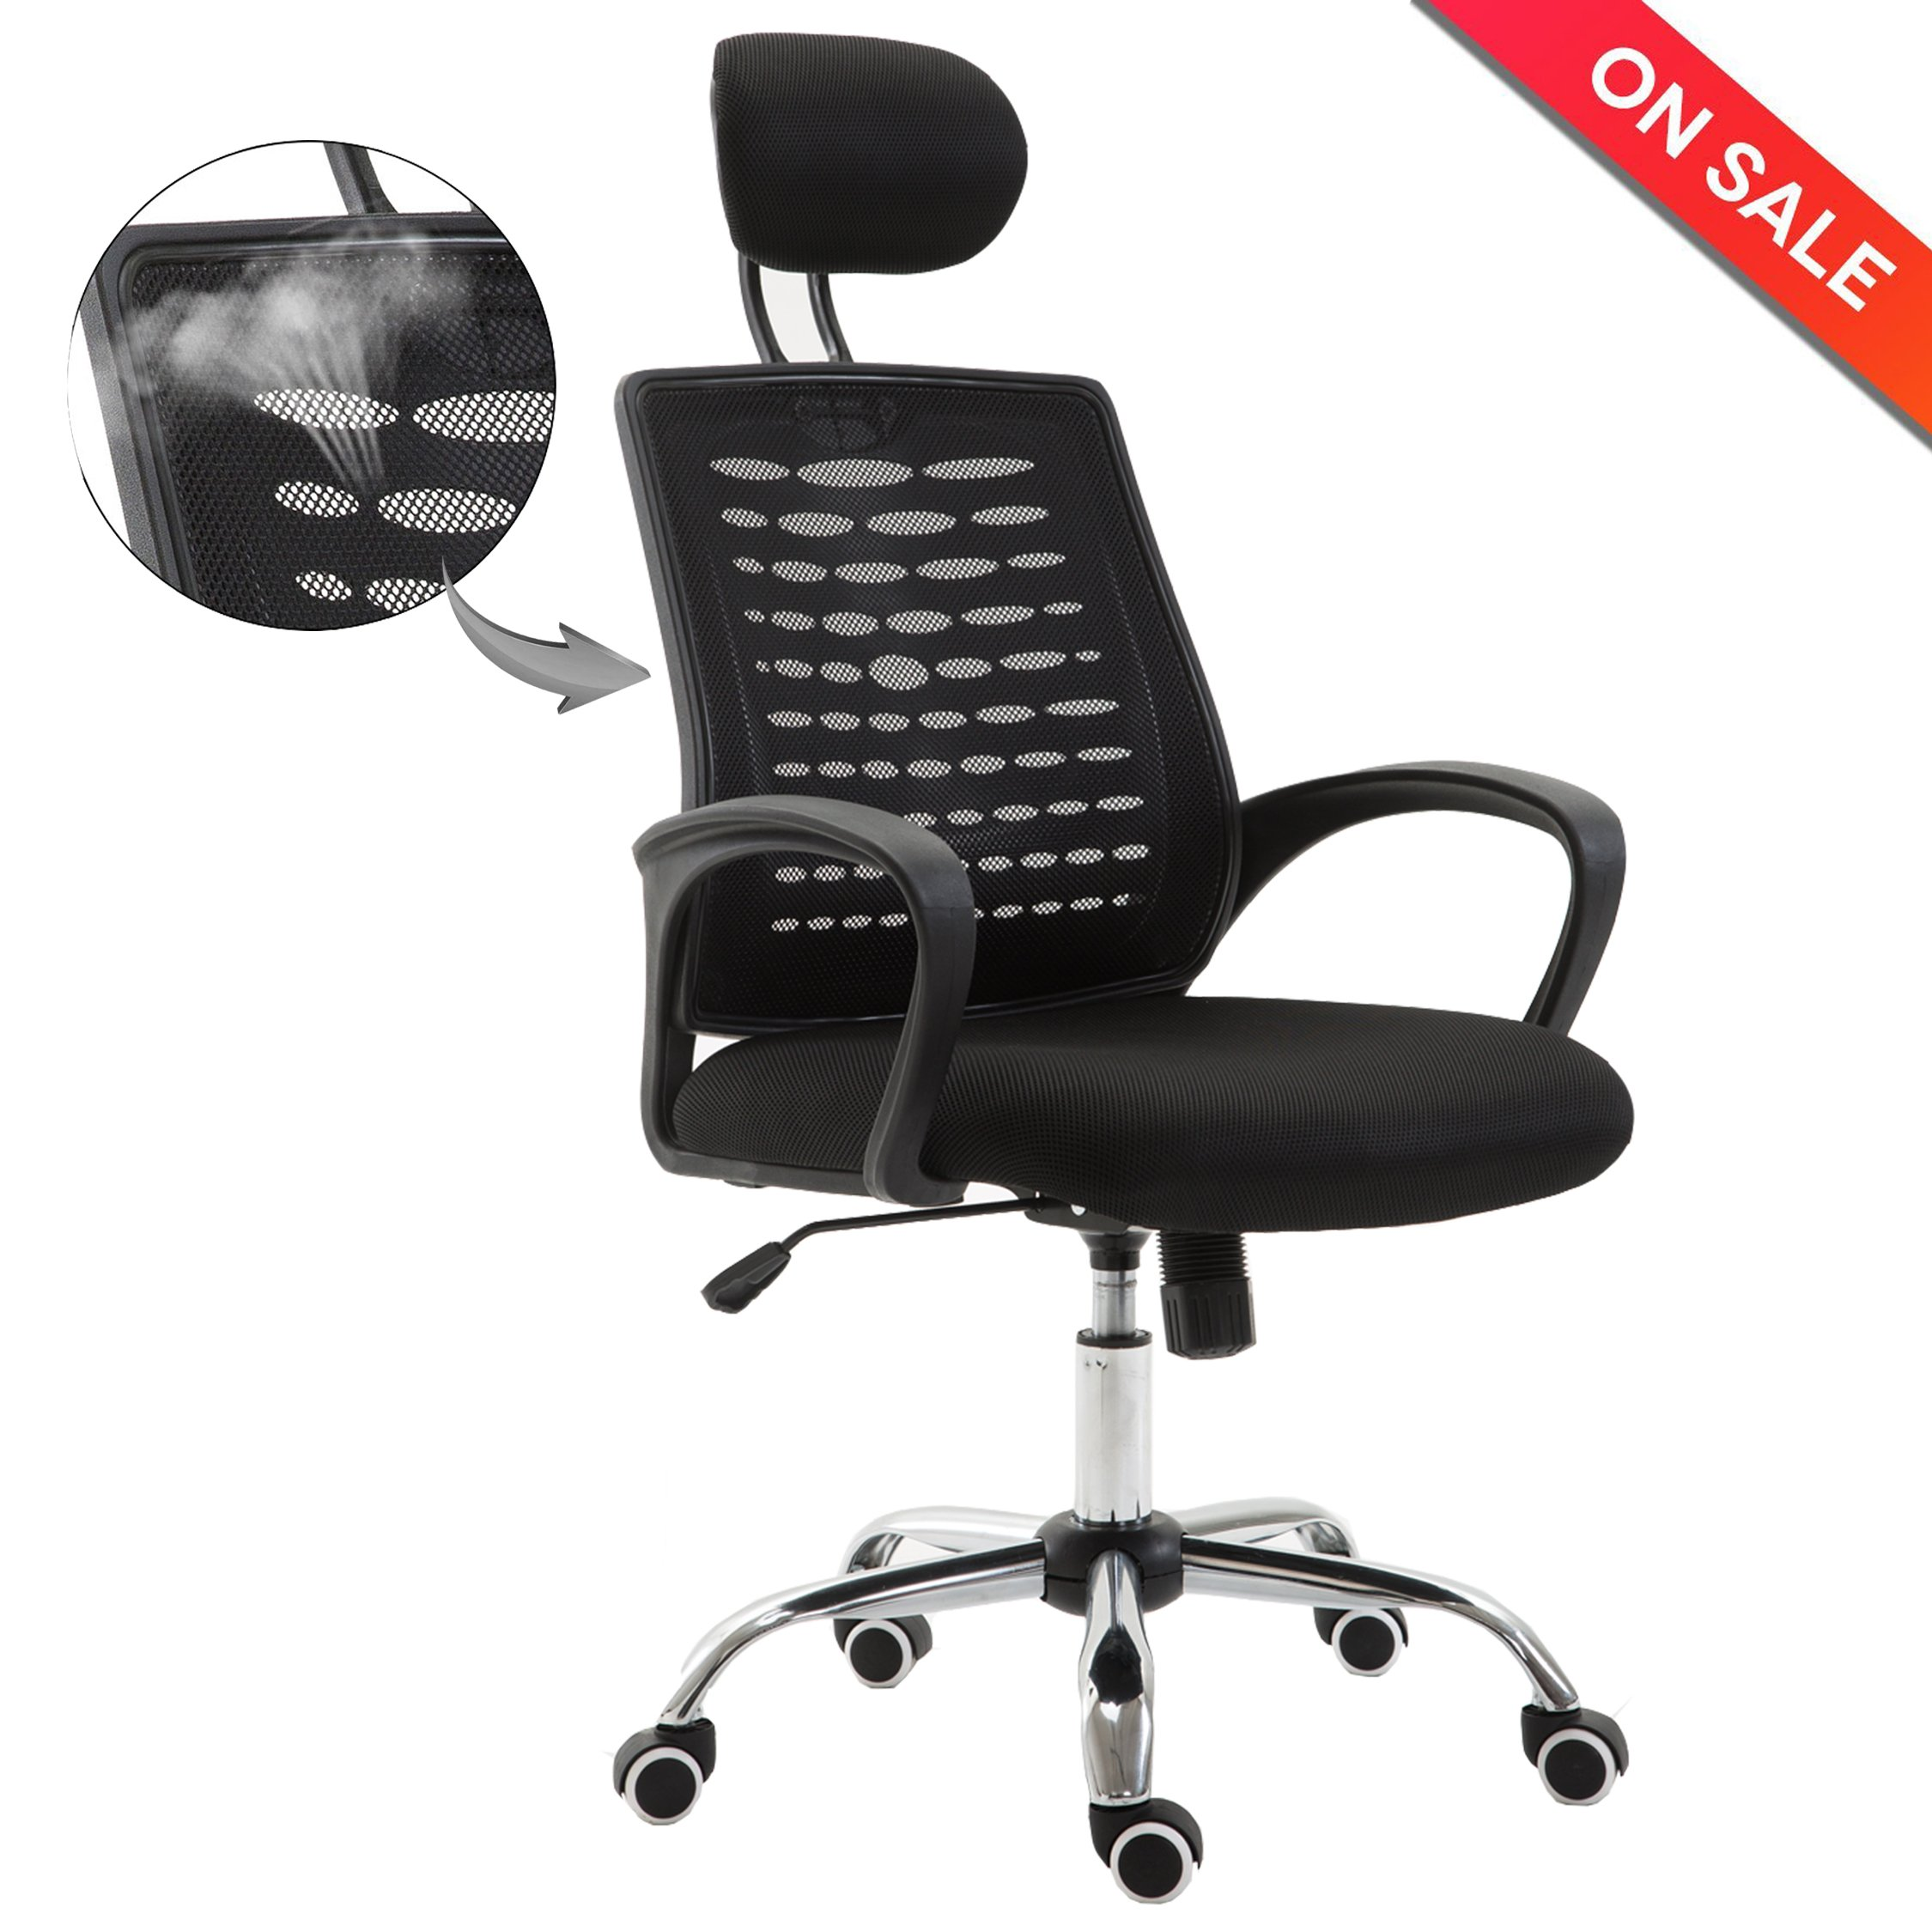 Muzii Ergonomic Office Chair Adjustable High-Back Mesh Task Executive Chair with Headrest Arm Rest for Home Office (Task Chair)